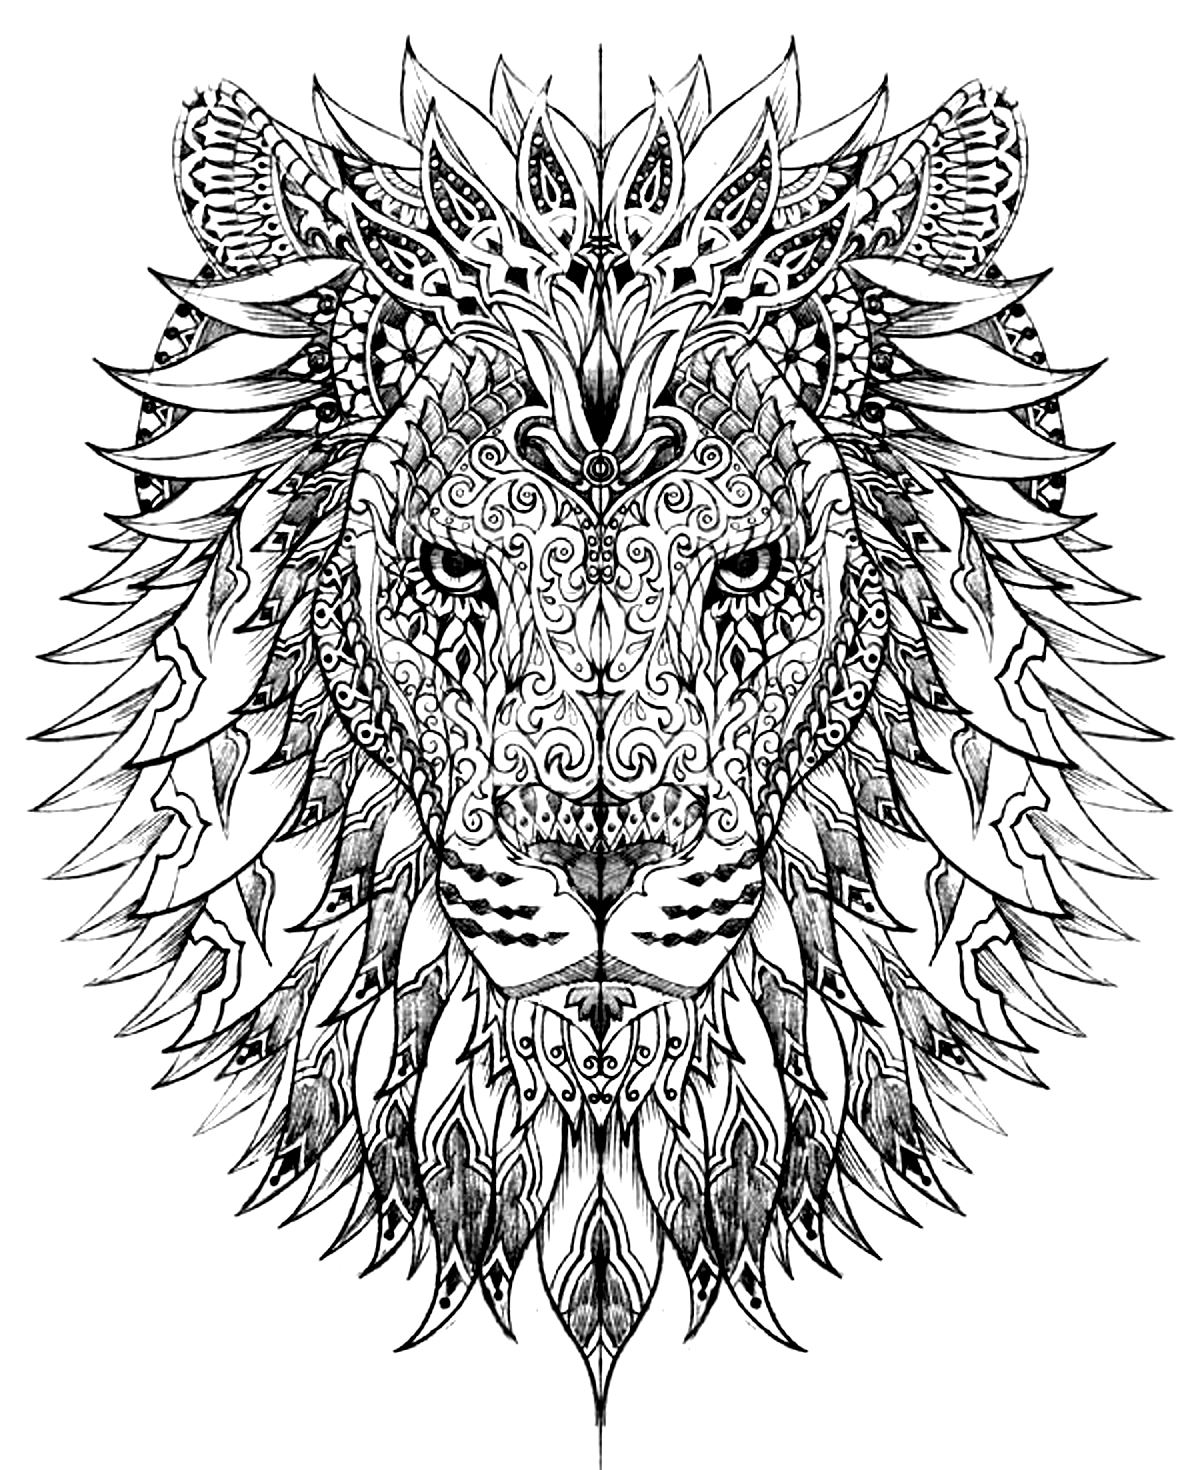 coloring pictures for adults adult coloring pages animals best coloring pages for kids adults coloring pictures for